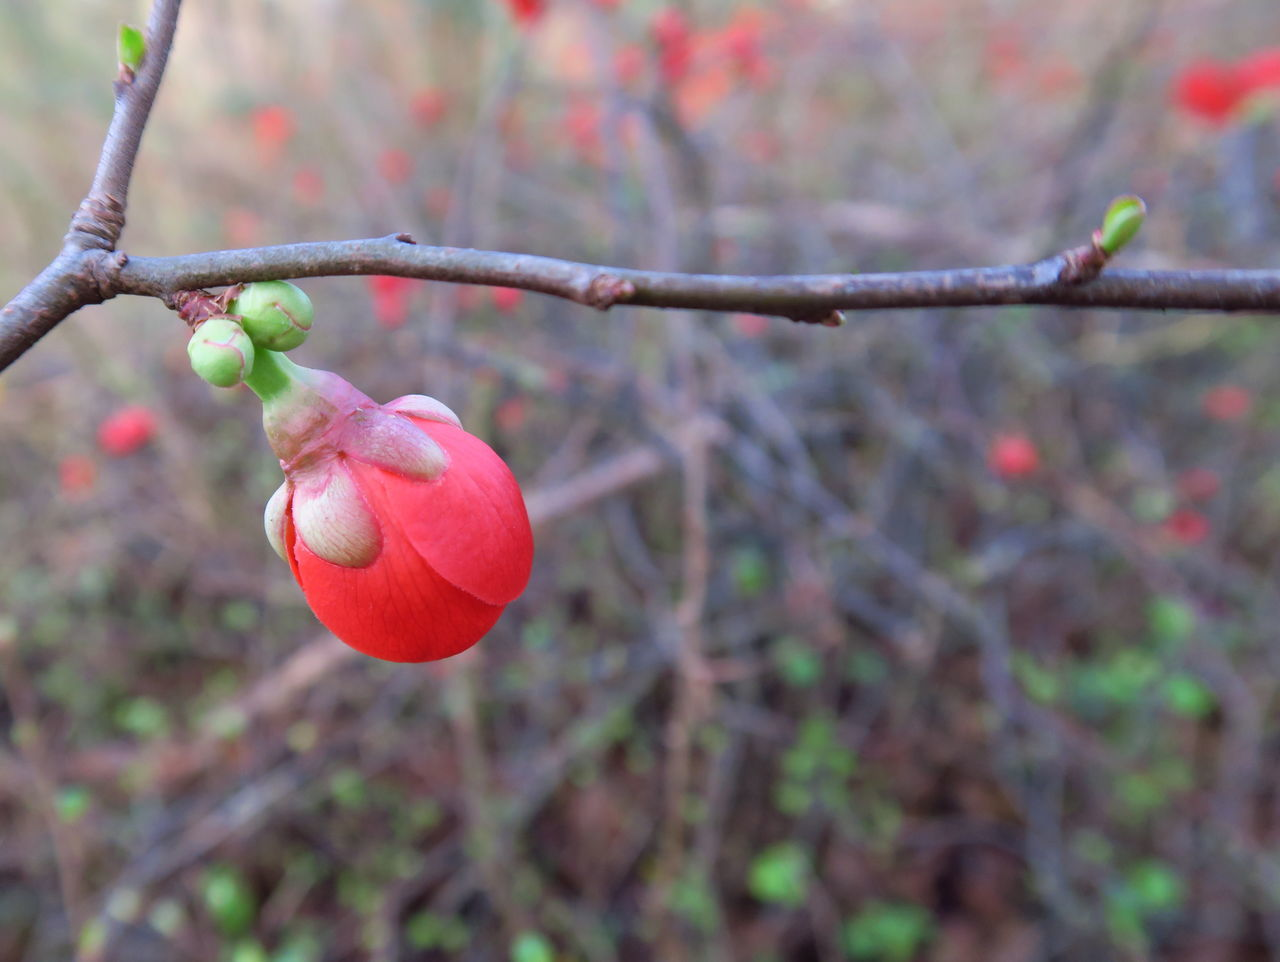 fruit, focus on foreground, growth, food and drink, day, tree, freshness, outdoors, close-up, branch, beauty in nature, nature, no people, rose hip, red, food, healthy eating